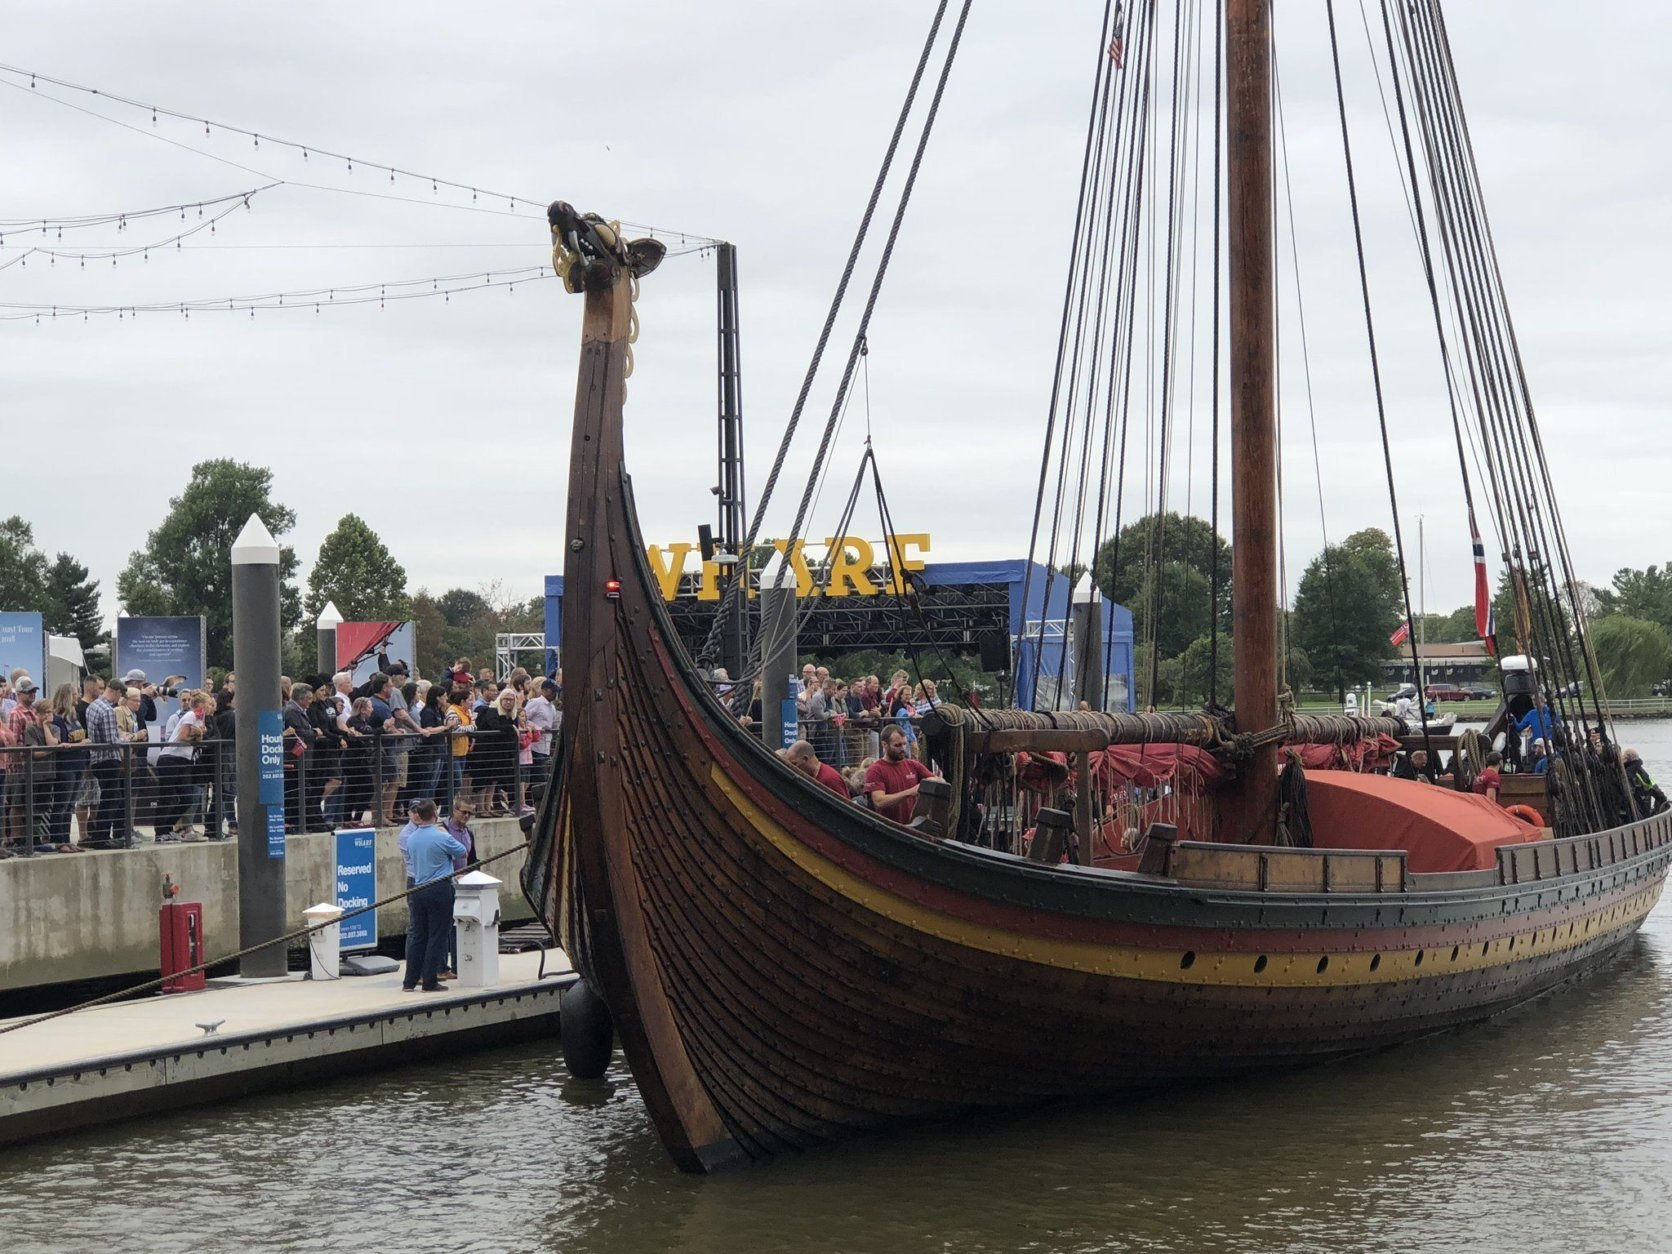 The ship is open to tours while it's docked at The Wharf in Southwest D.C. (WTOP/Kristi King)